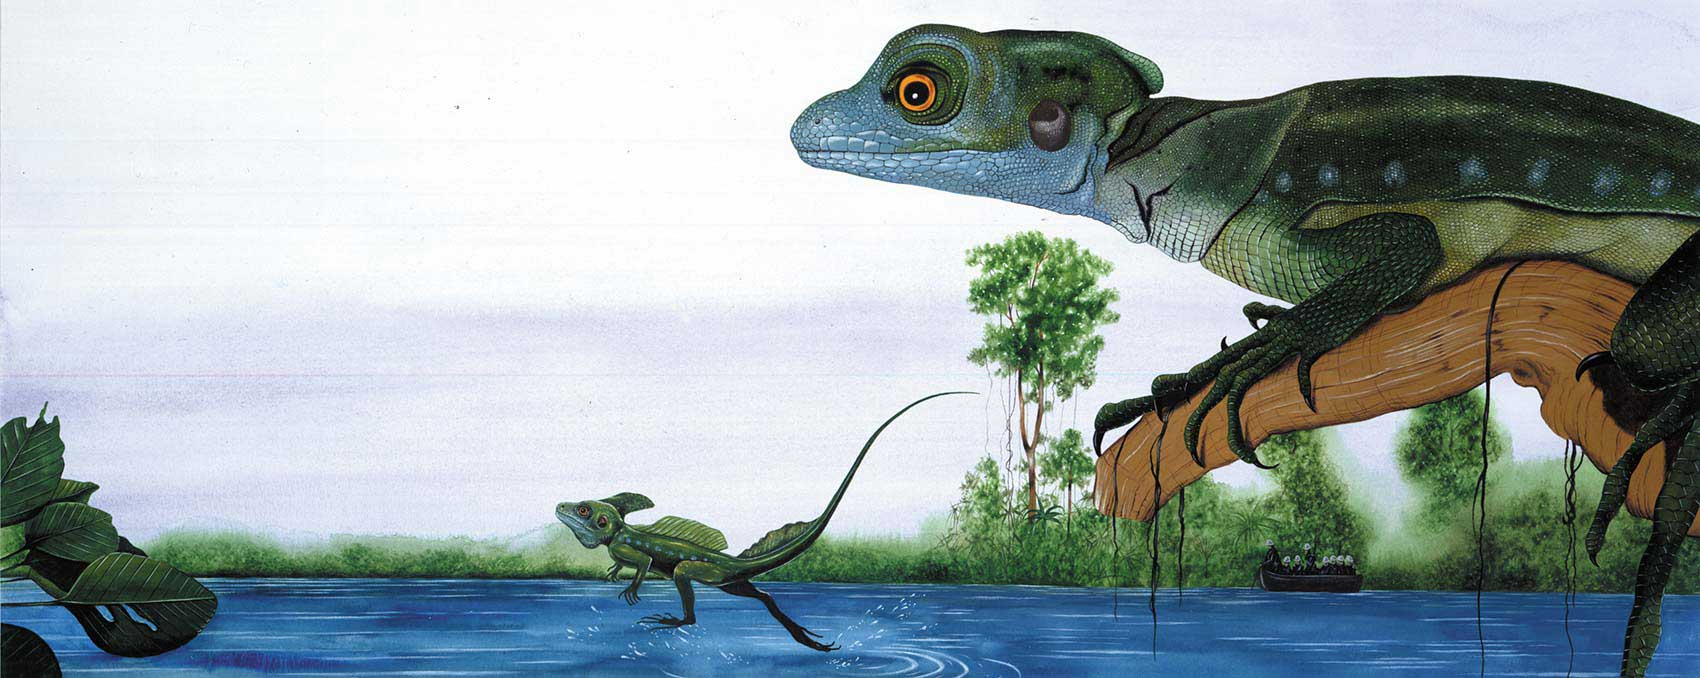 illustration-realistic-animals-lizard